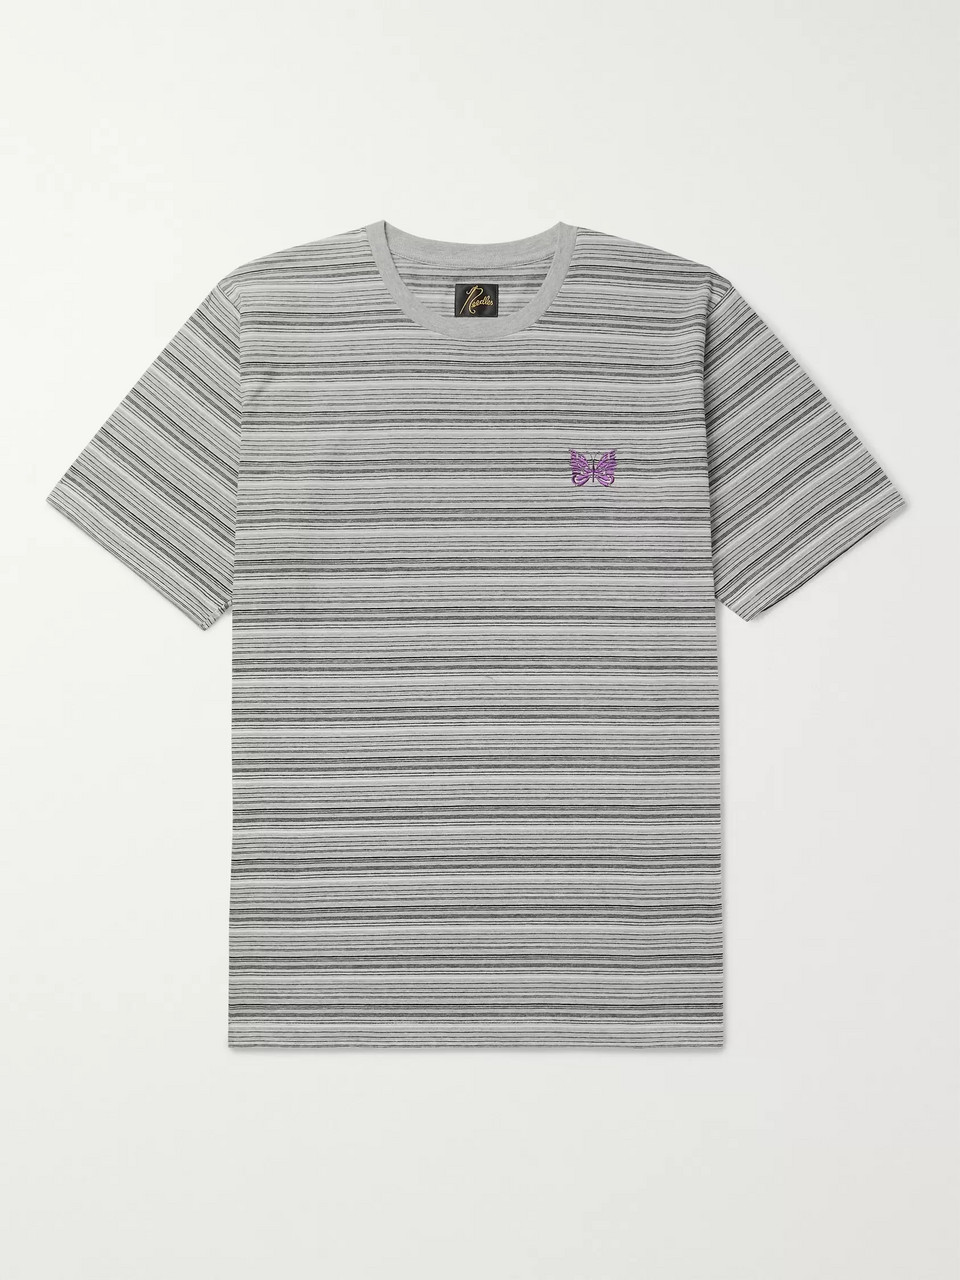 Needles Embroidered Striped Cotton-Jersey T-Shirt